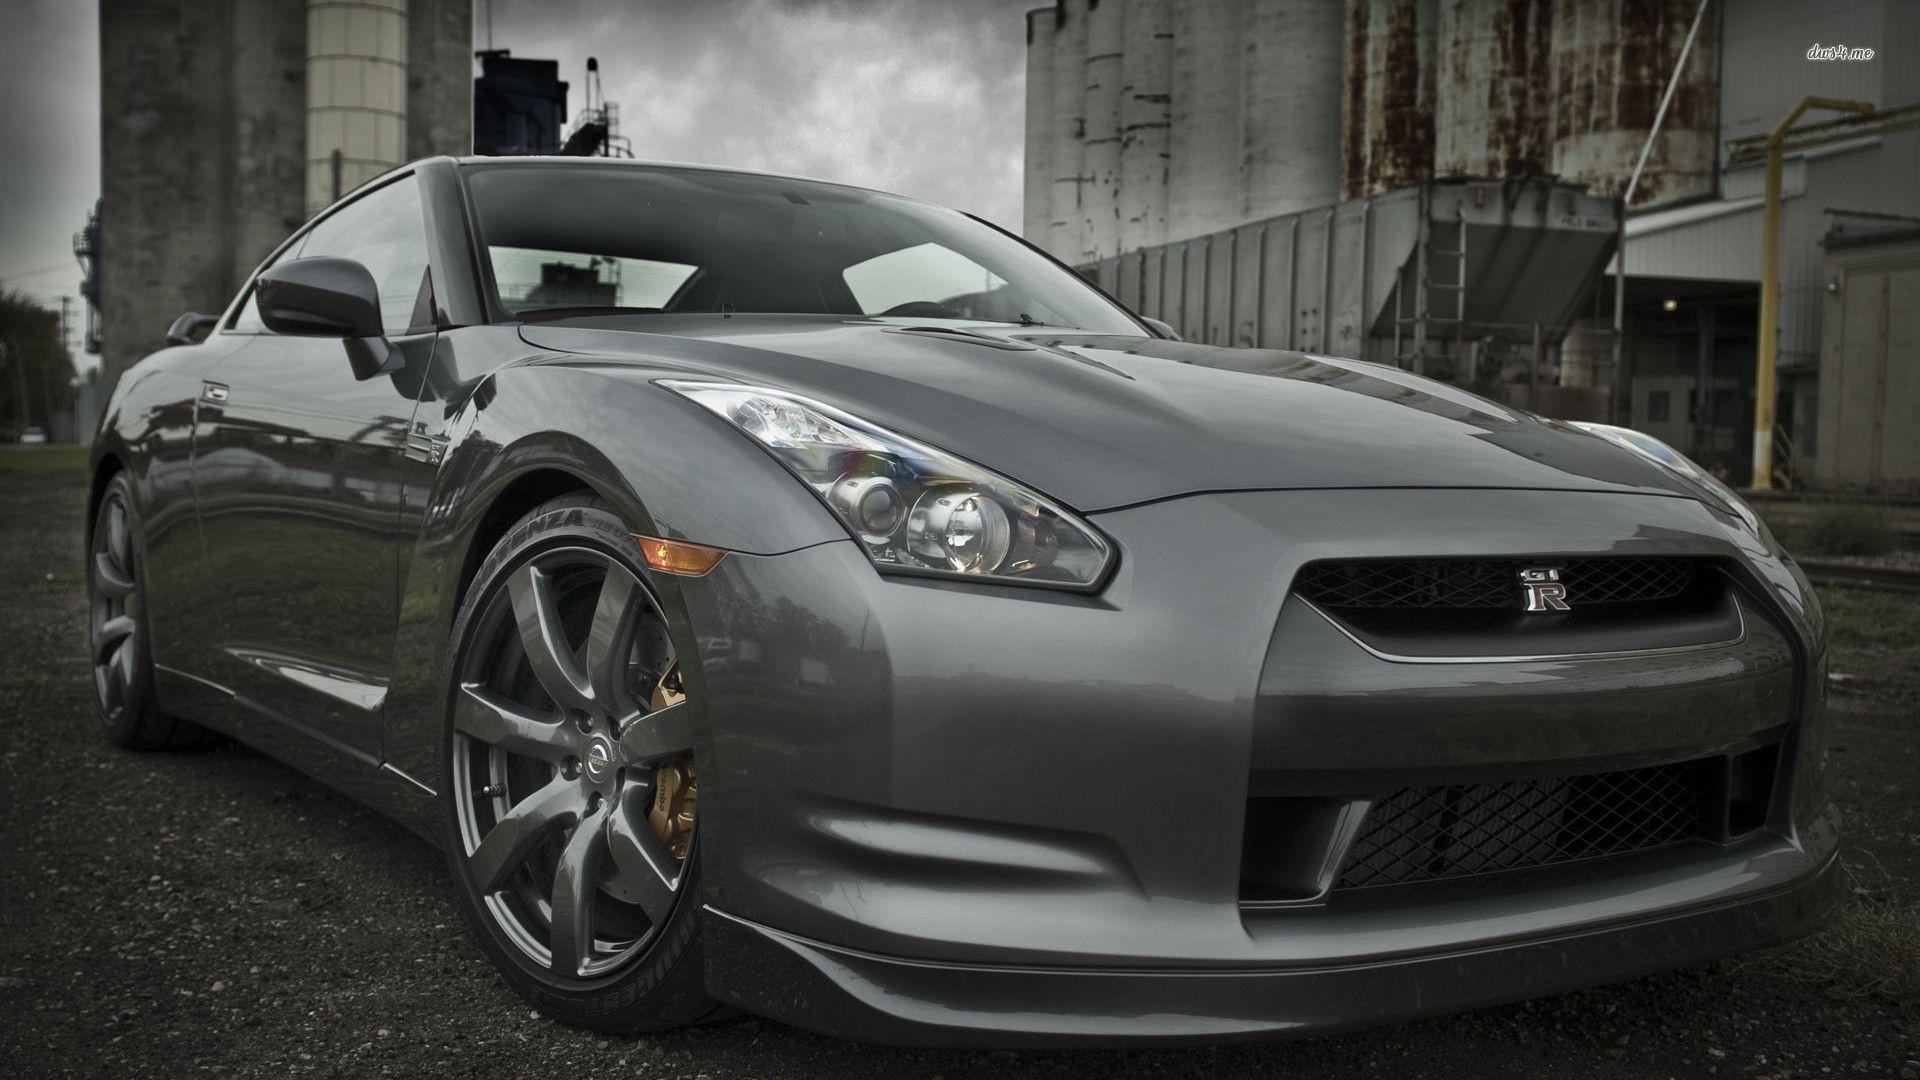 coolest gtr wallpapers - photo #16